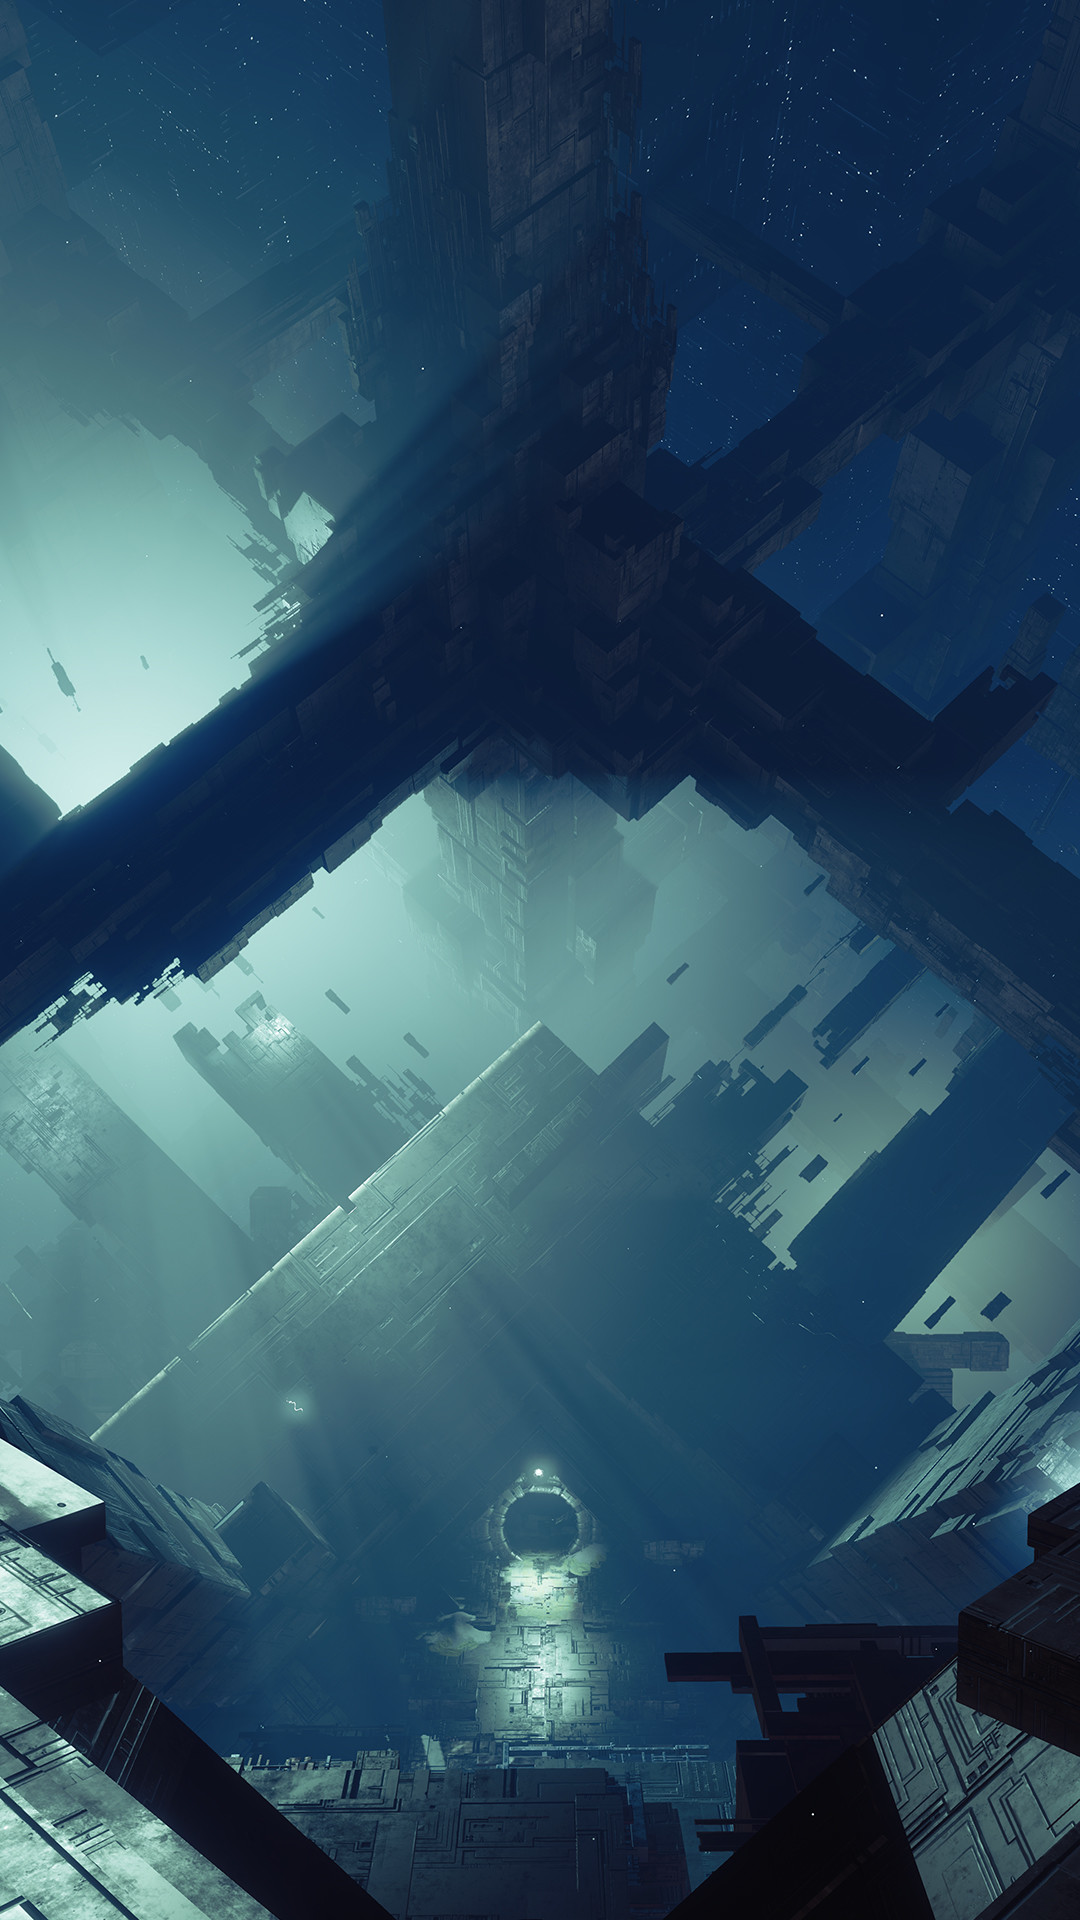 Bungie wallpapers 71 images - 4k girl wallpaper for iphone ...